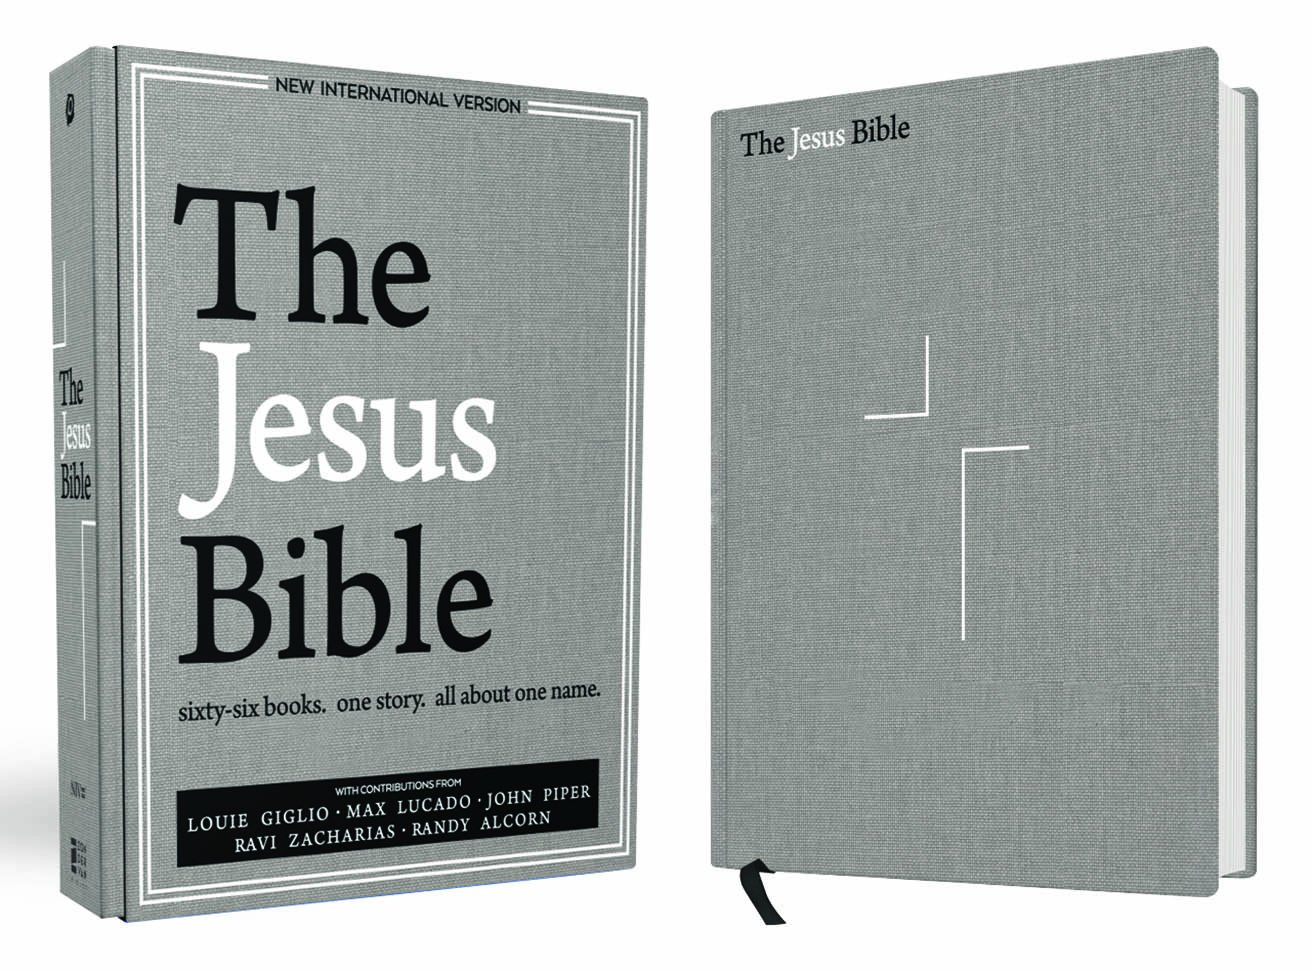 bible savurbks the full niv text accompanied by essays sidebar notes book introductions full page articles and journaling room the jesus bible